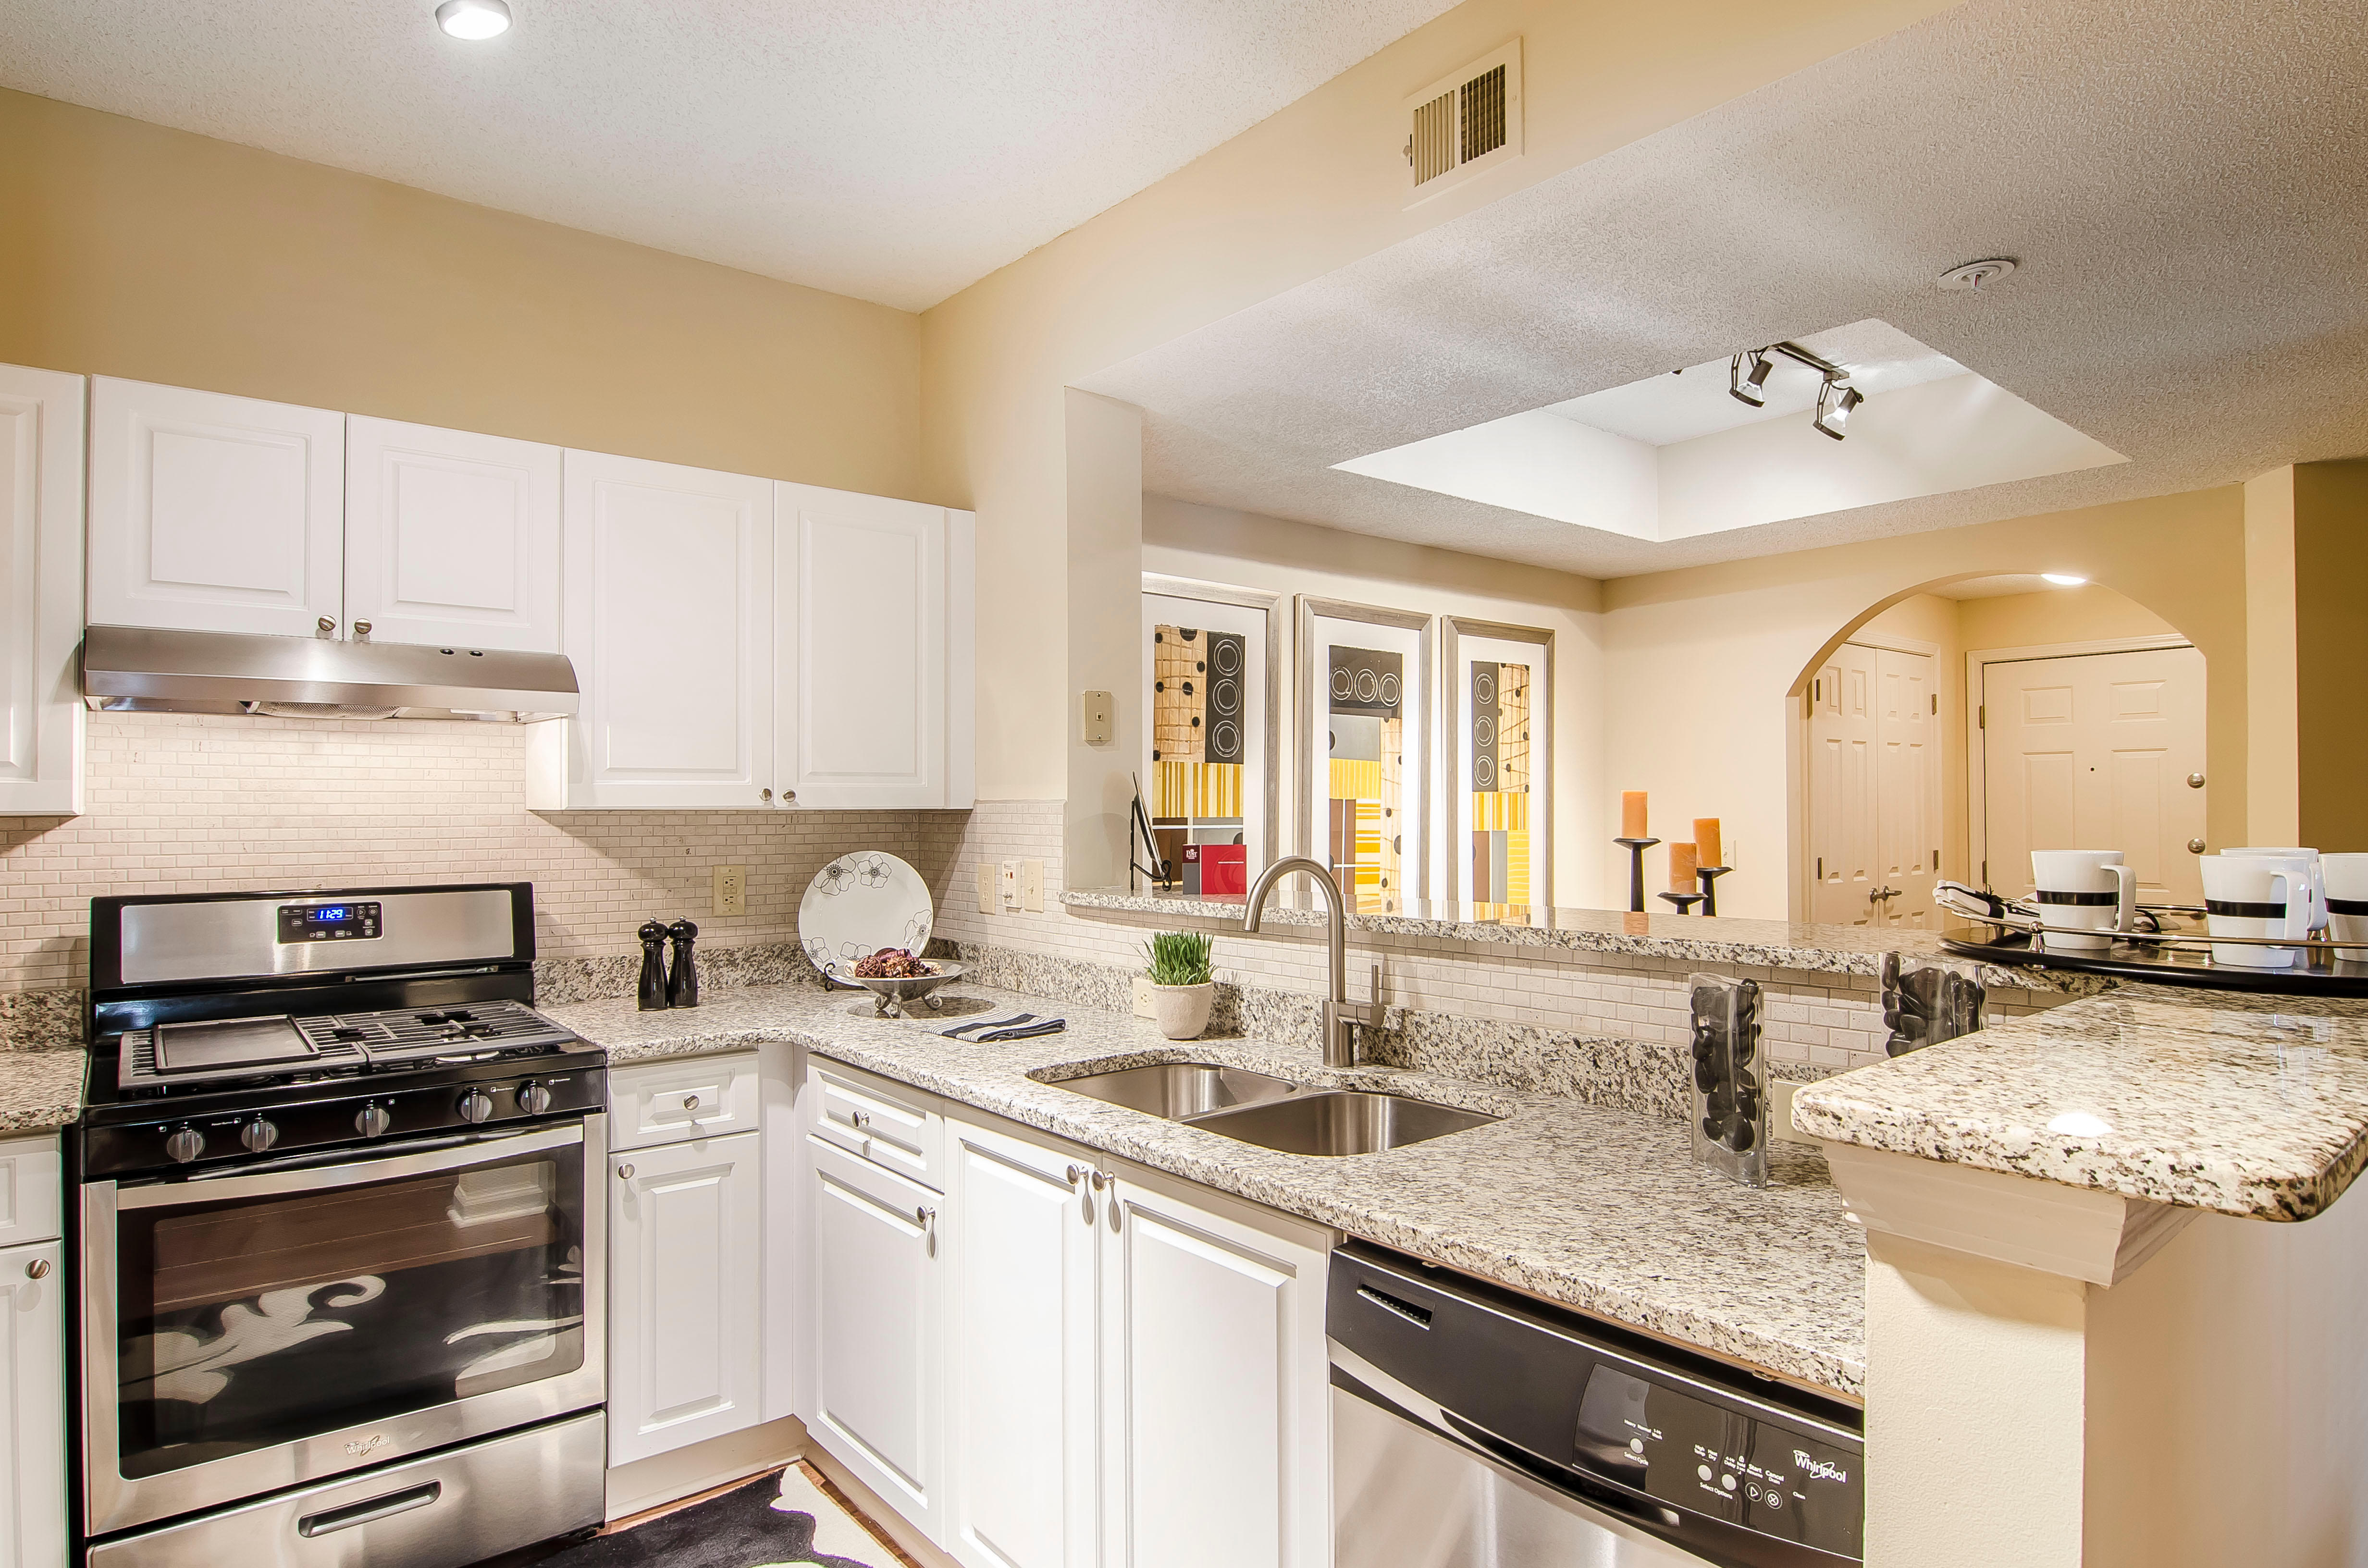 The Pointe at Collier Hills image 8